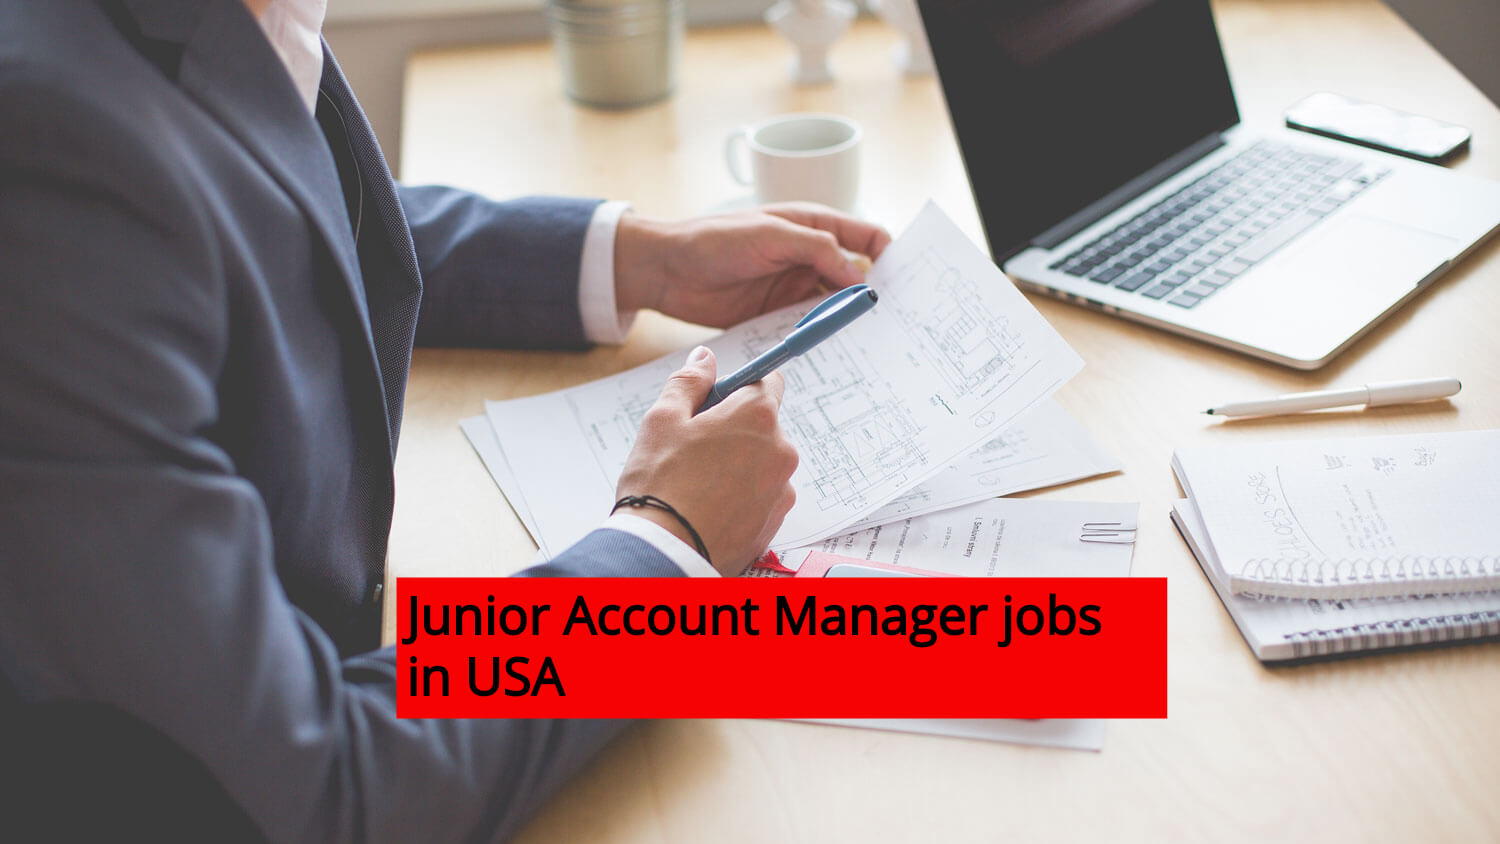 Junior Account Manager jobs in USA